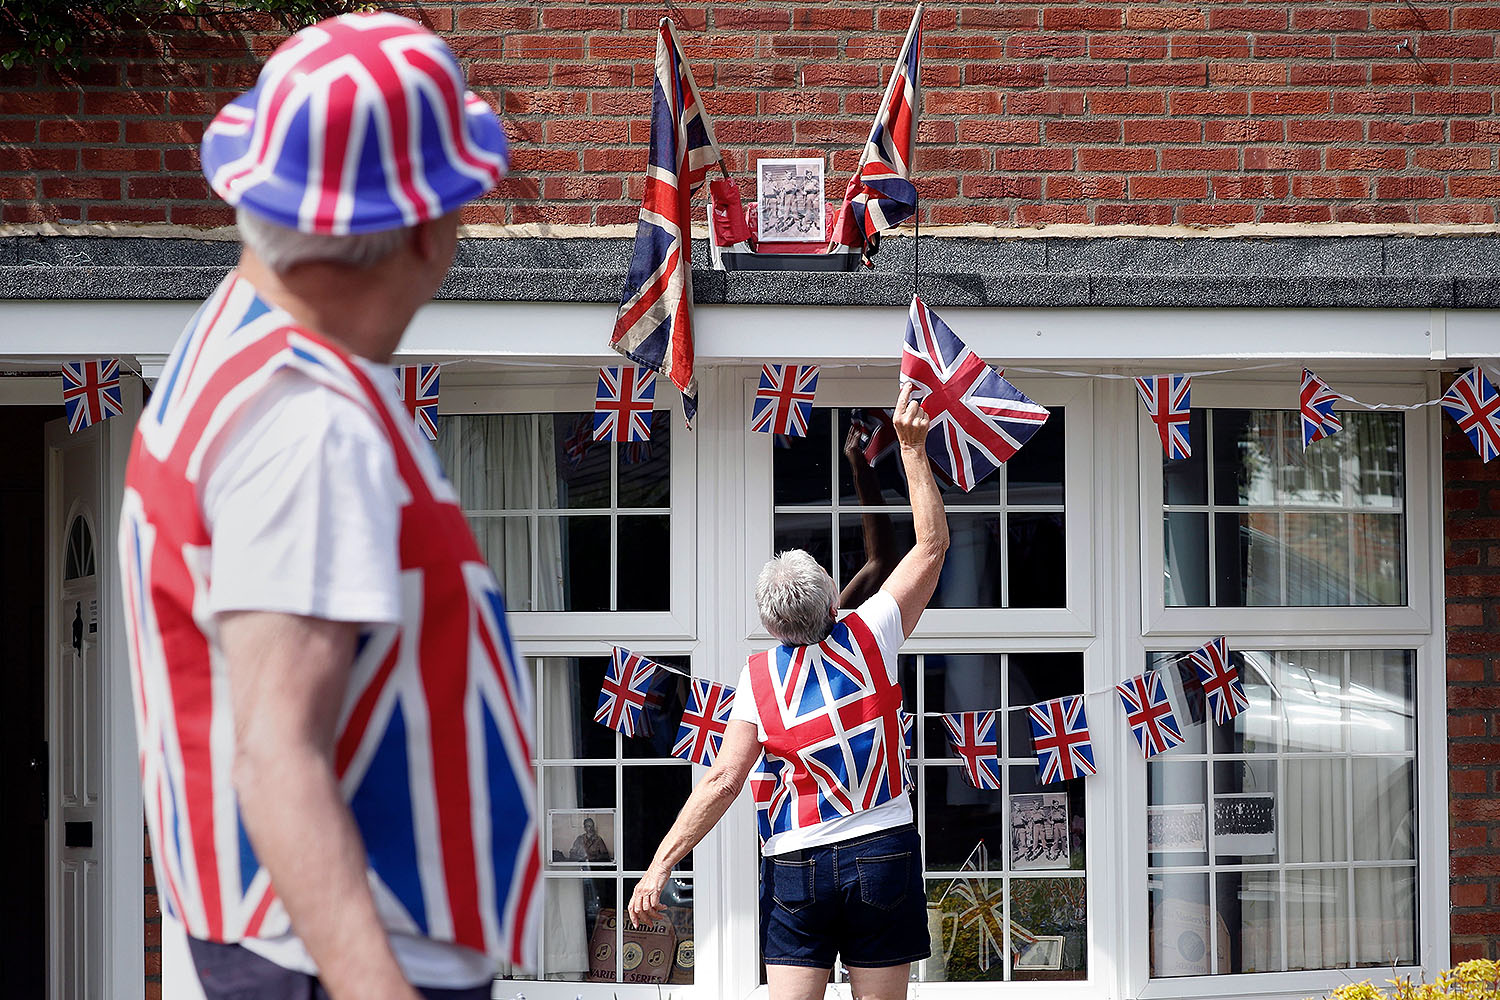 Graham Gillson watches his wife, Sue, untangle a flag outside their home ahead of a two-minute moment of silence to mark the 75th anniversary of VE Day, the end of the Second World War in Europe, in Hartley Wintney, Hampshire, England, on May 8. The two Union cloth flags on the eave flew outside Sue's family home in east London on VE Day 1945. ADRIAN DENNIS/AFP via Getty Images